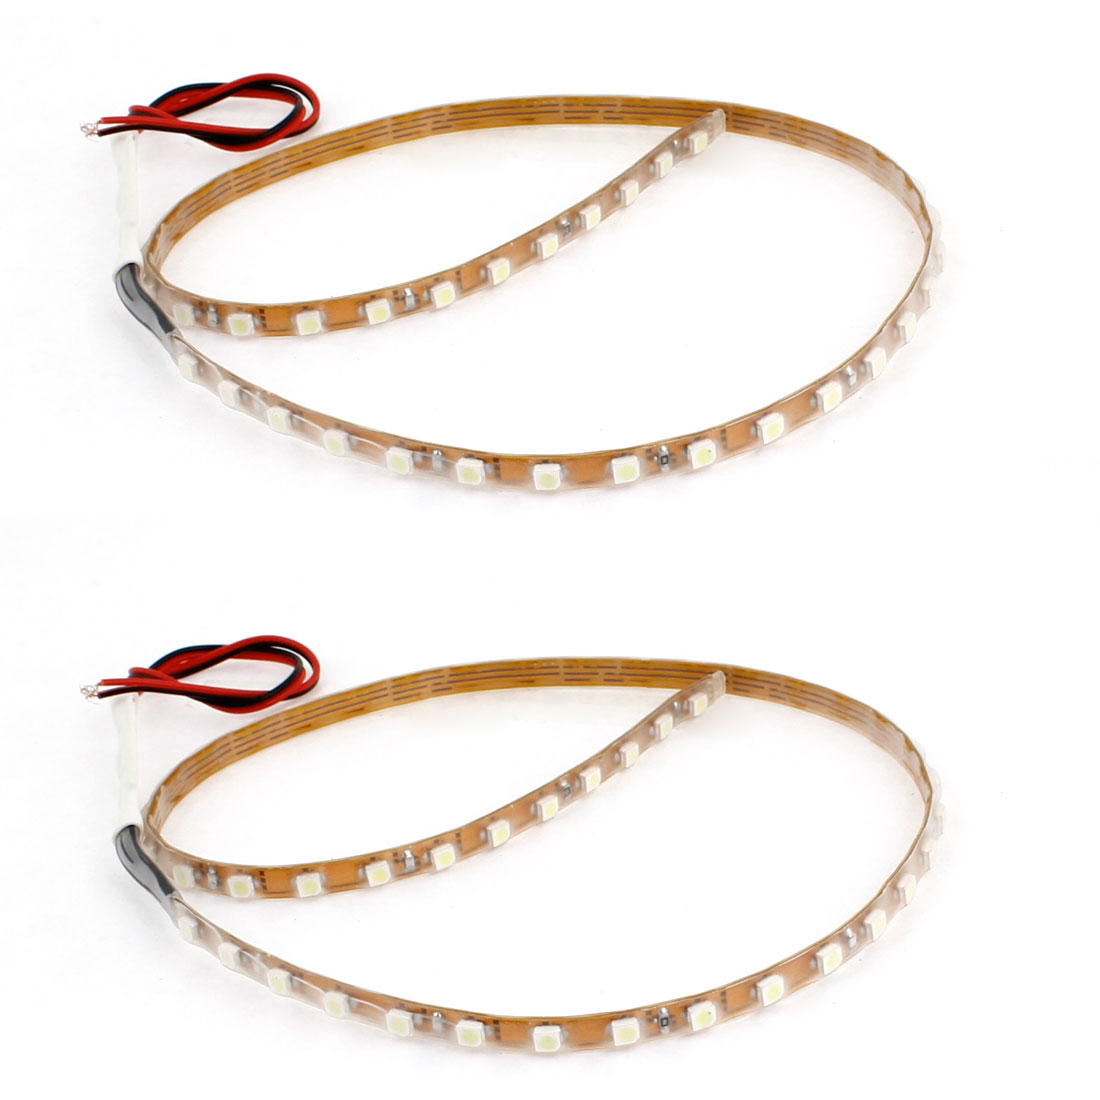 2pcs Car White 45 LED 1210 3528 SMD Decorative Flexible Light Strip Bar 17.7""